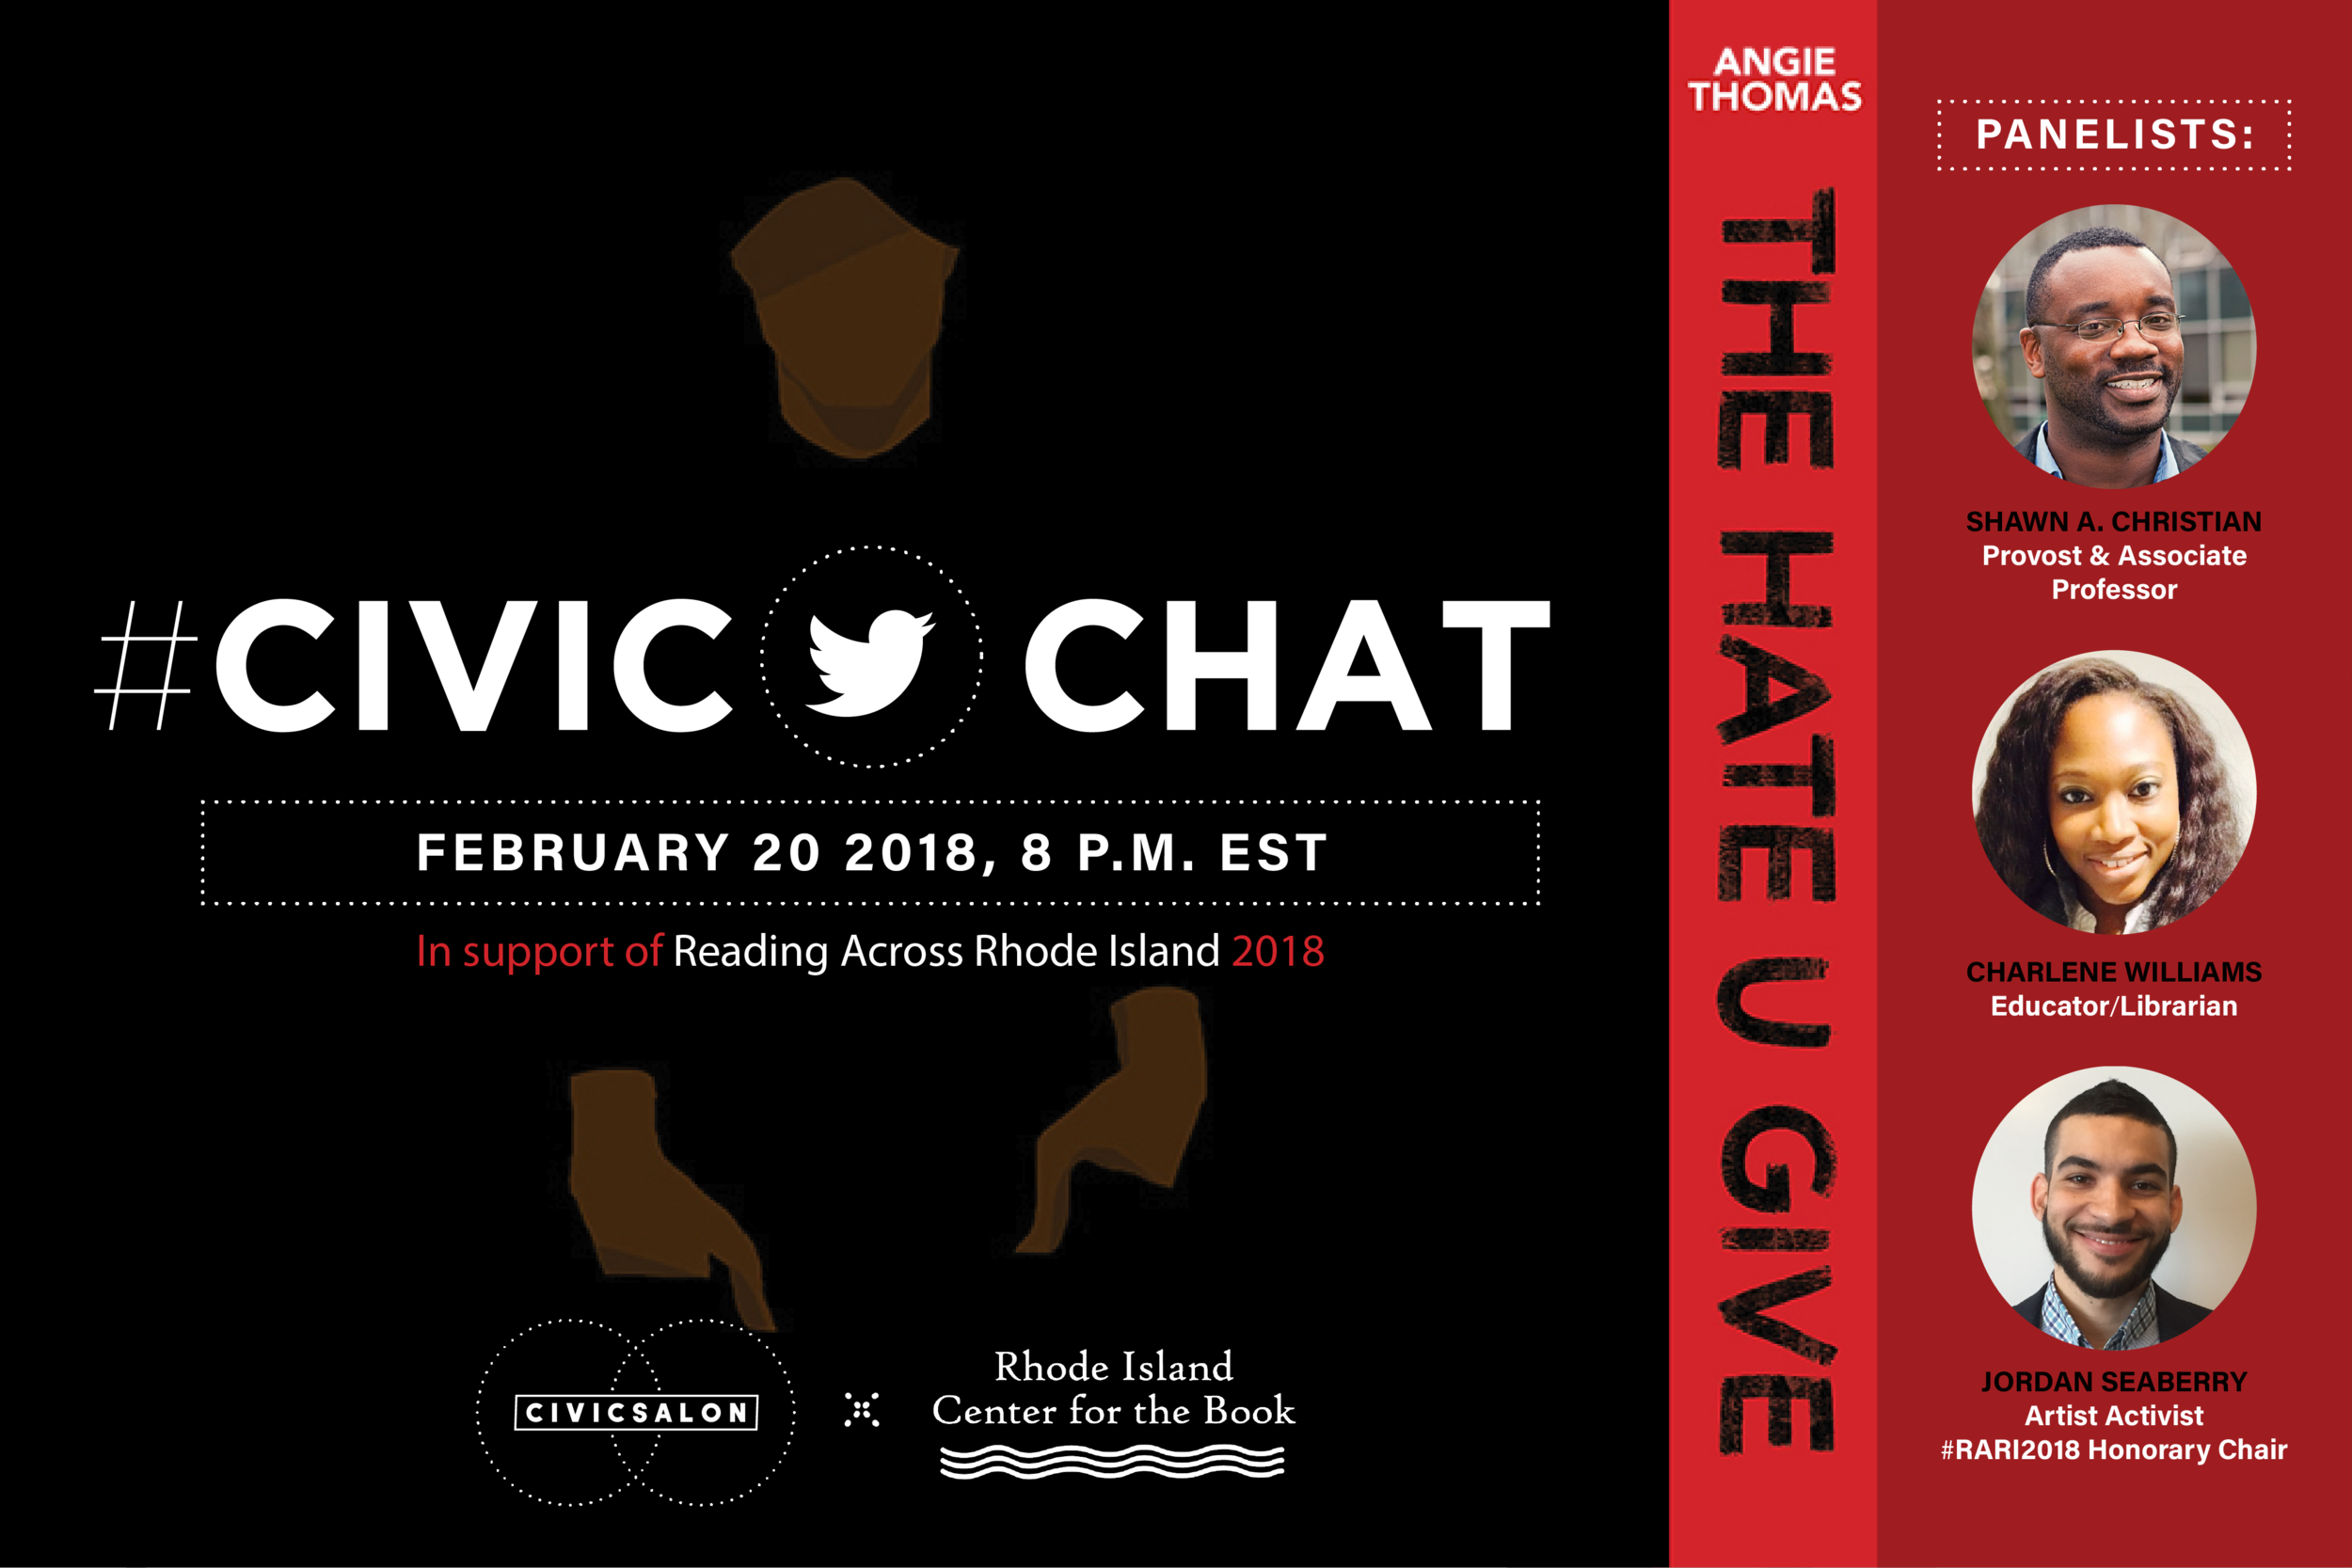 Reading Across Rhode Island 2018 - February 20, 2018 - 8pmCivicSalonwill host the 1st #CivicChat of a series in support of this year's @RIBook's reading selection The HATE U GIVE by Angie Thomas.Join the chat using #ProximityRI Panelist:Shawn Christian,Charlene Williams,Jordan Seaberry |LEARN MORE